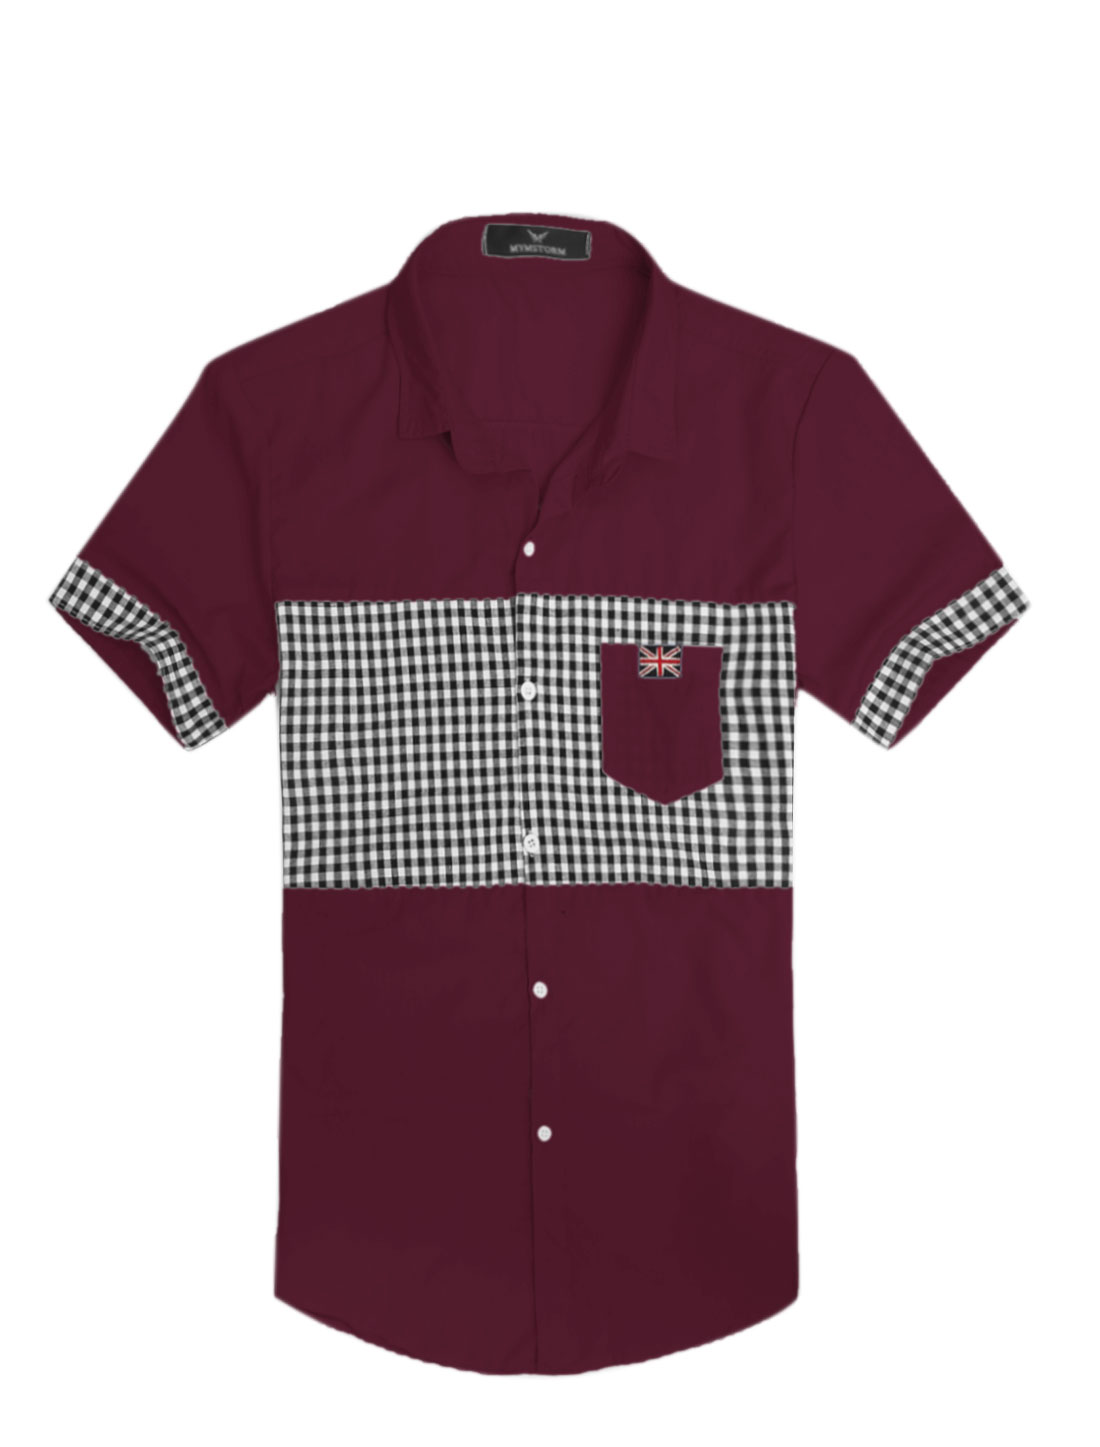 Men Point Collar Union Flag Applique Slim Fit Top Shirt Burgundy M